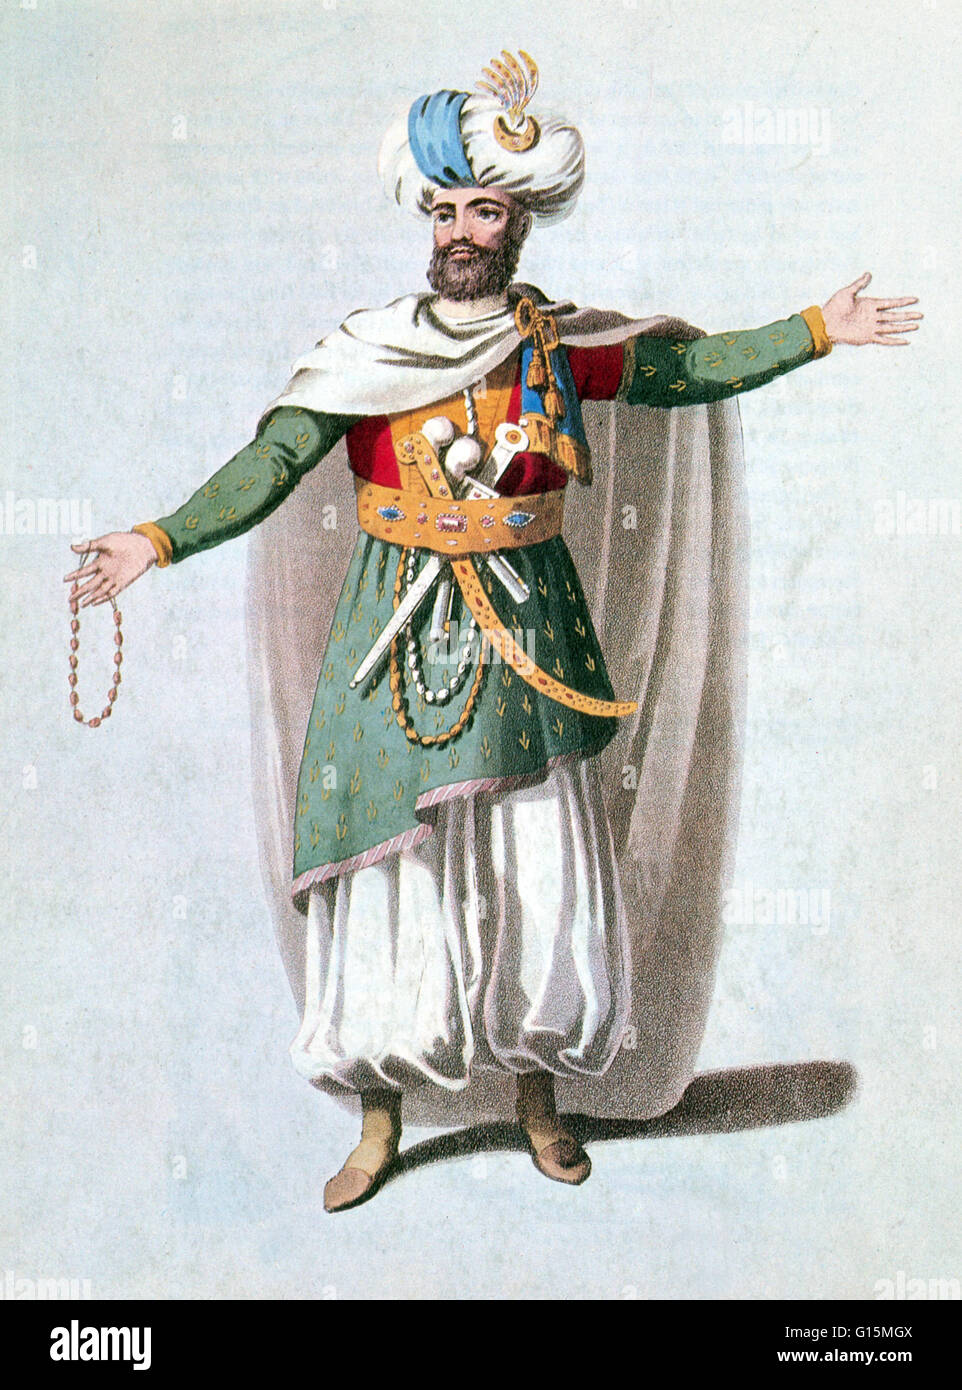 Sidy Hafsan, Bey of Tripoli (frontispiece portrait) from Narrative of a ten year's residence at Tripoli in Africa Stock Photo